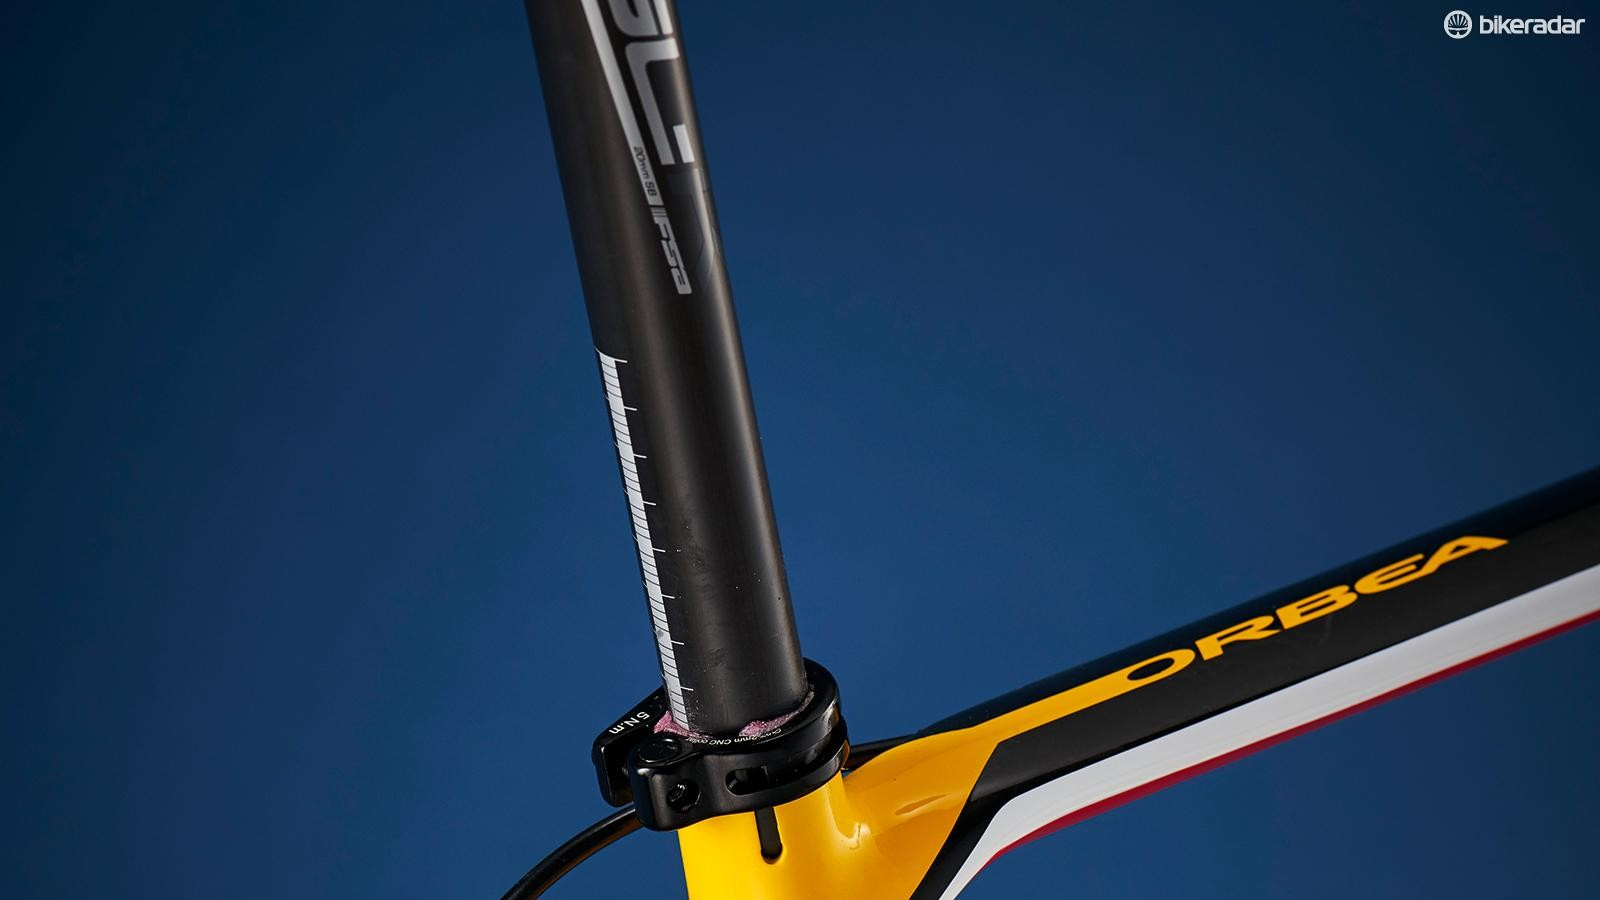 The carbon seatpost may be a slim 27.2mm in diameter but it still has room for the Di2 battery